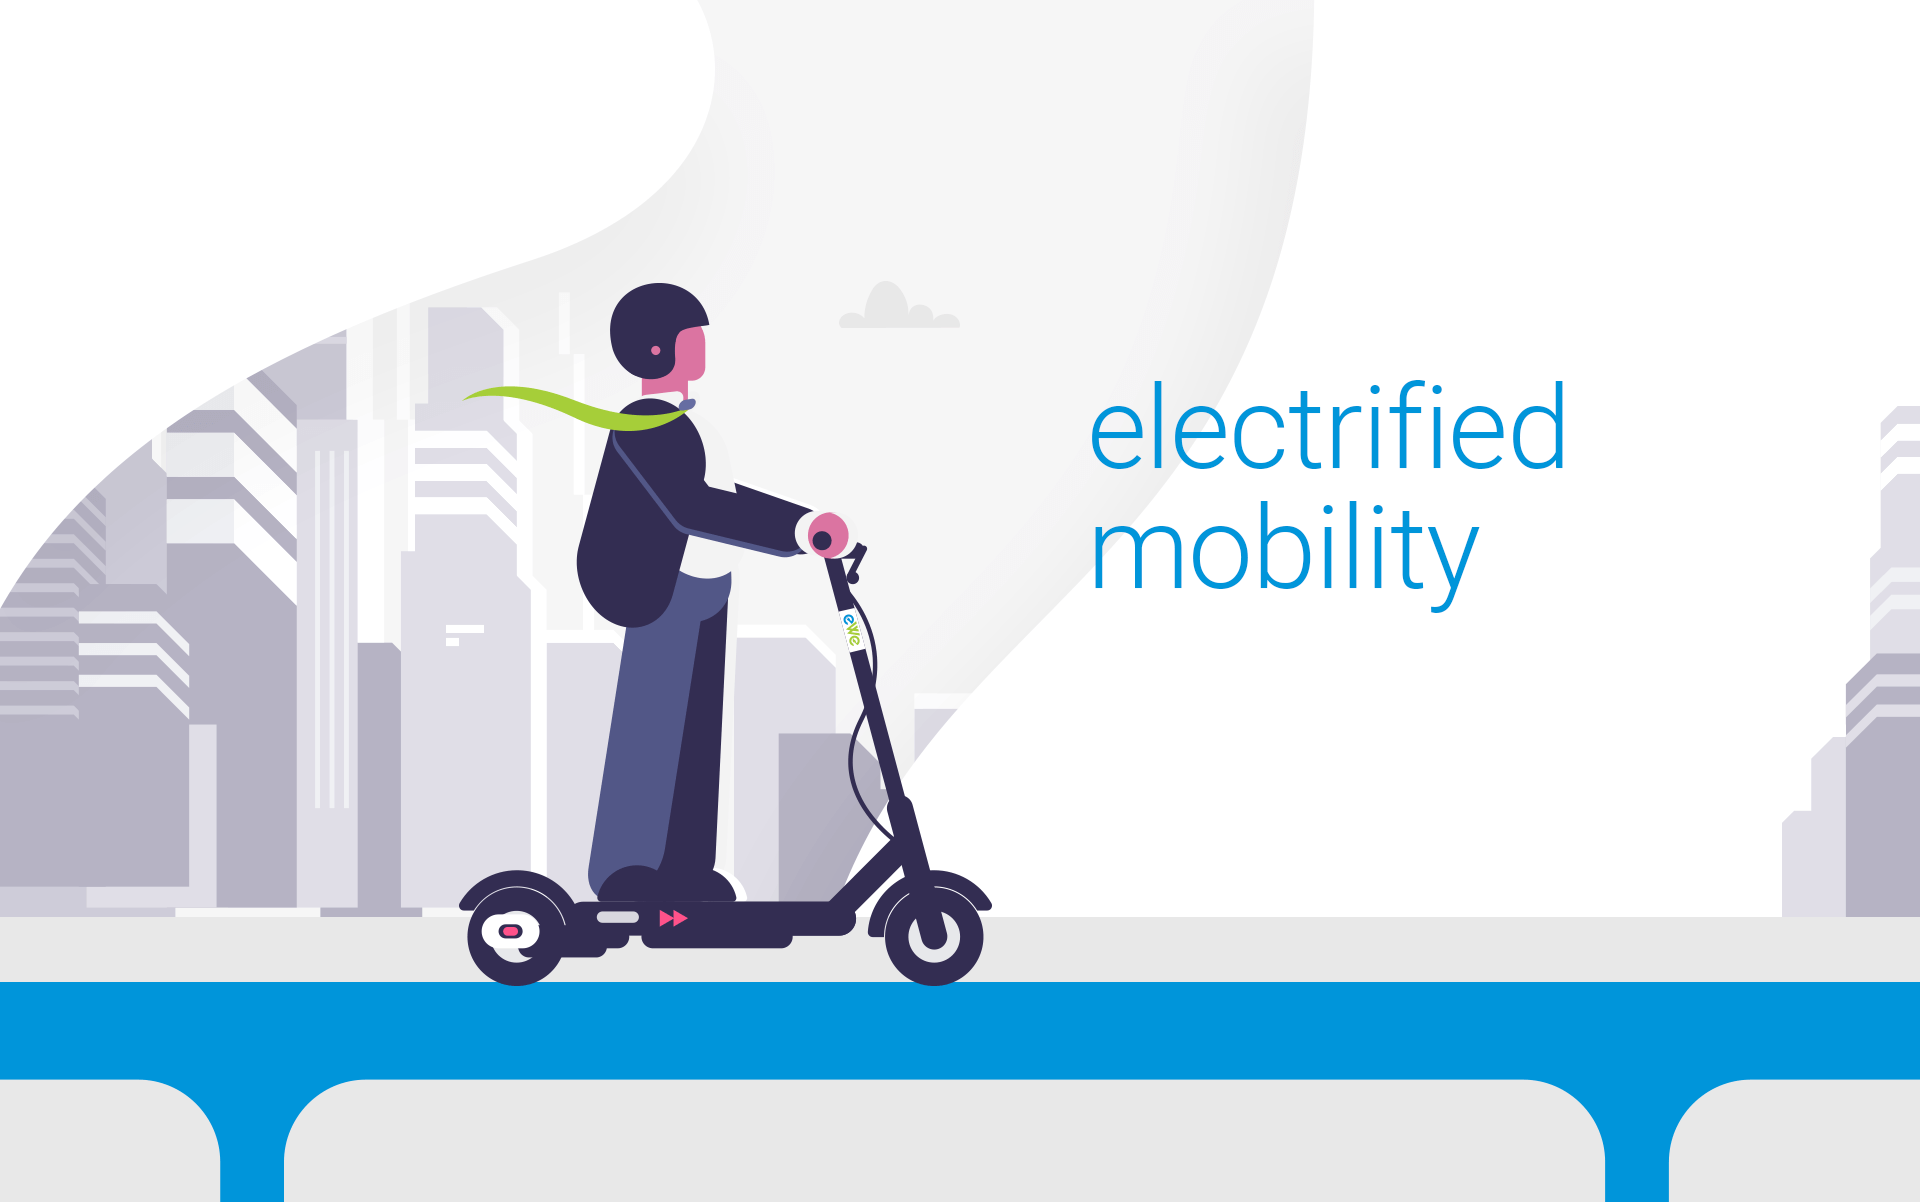 electrified mobility